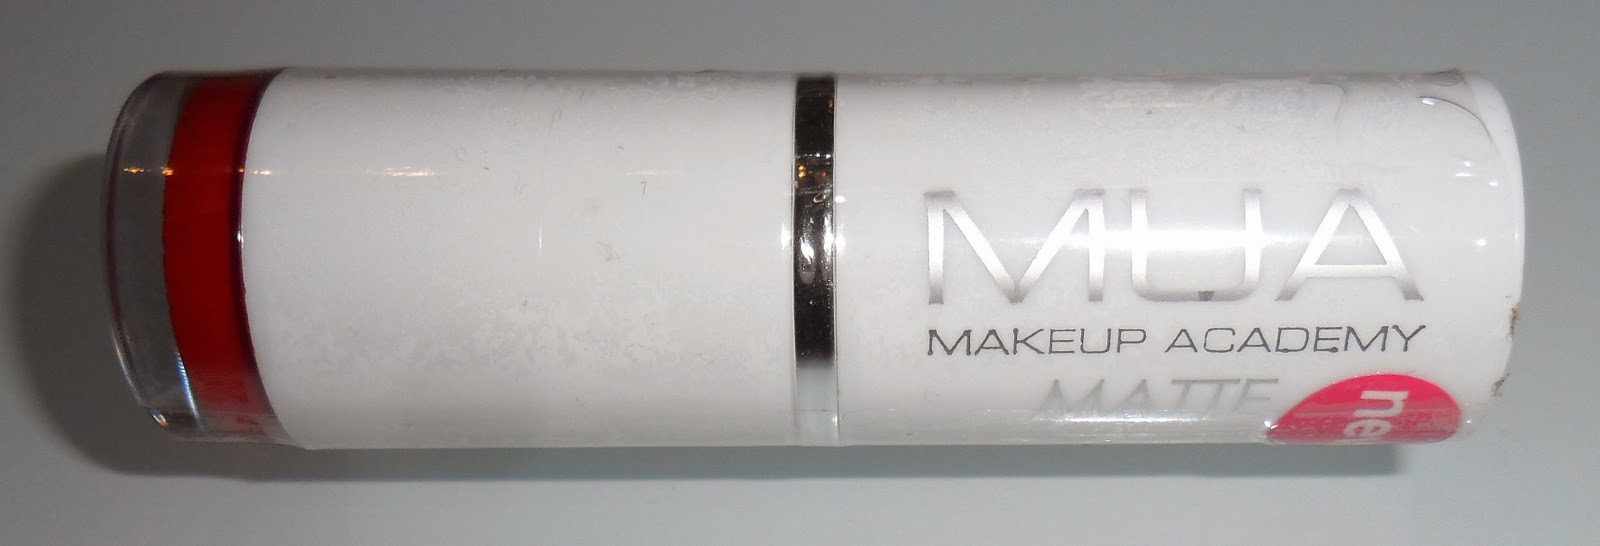 MUA Lipstick, Scarlet Siren Lipstick, Lipstick, Superdrug, Make-Up, Christmas Competitions